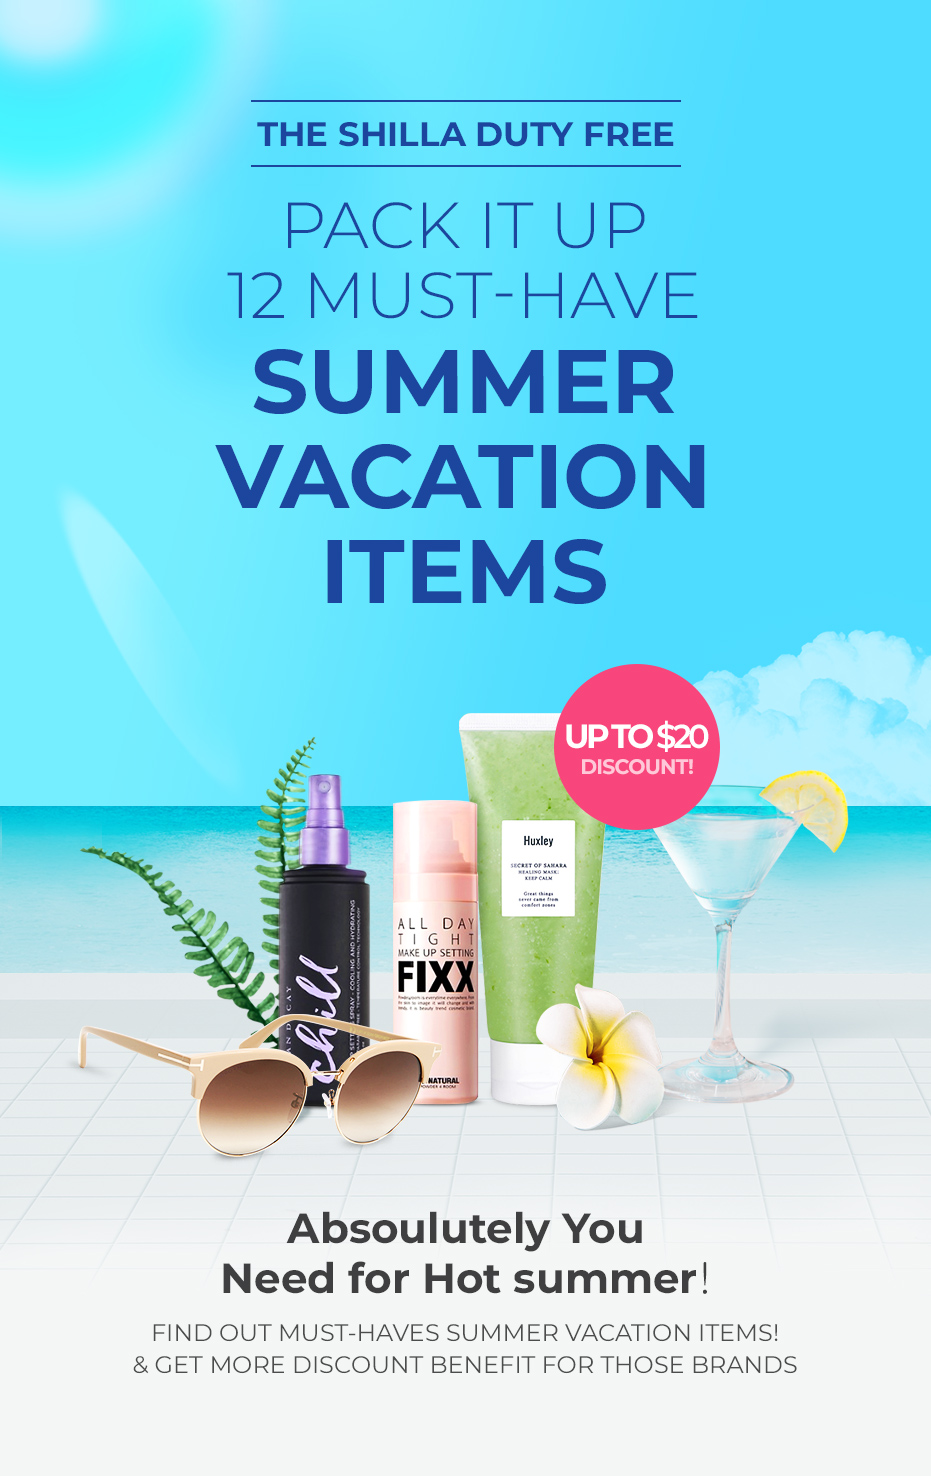 PACK IT UP 12 MUST - HAVE SUMMER VACATION ITEMS